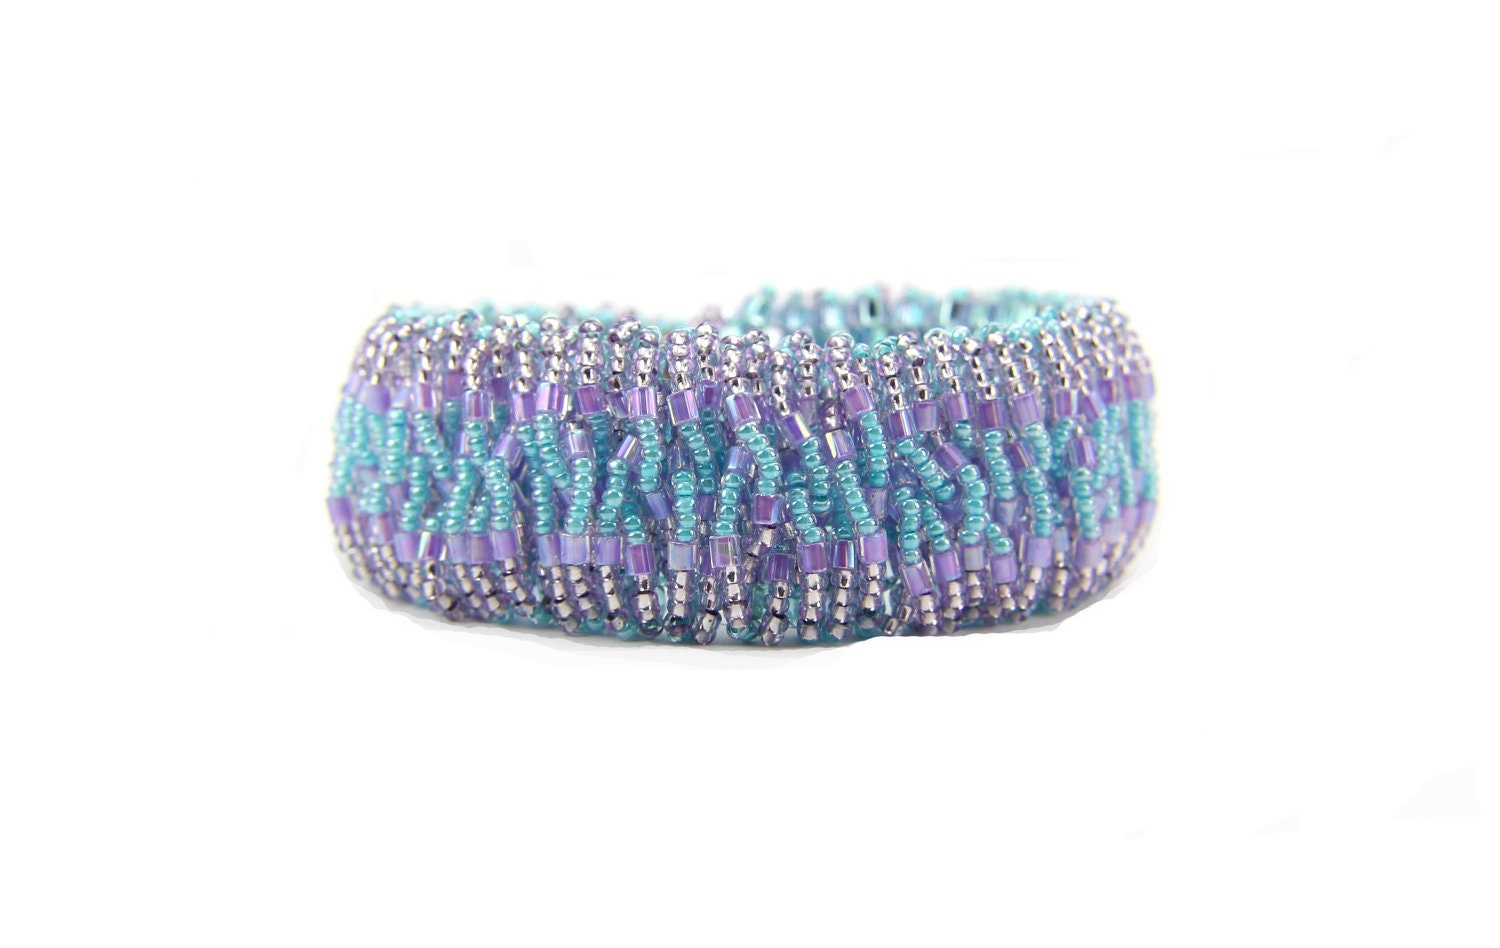 Bracelet Beaded Catepillar Aqua Turquoise Purple Pastel: Northern Lights - Thebracelettree